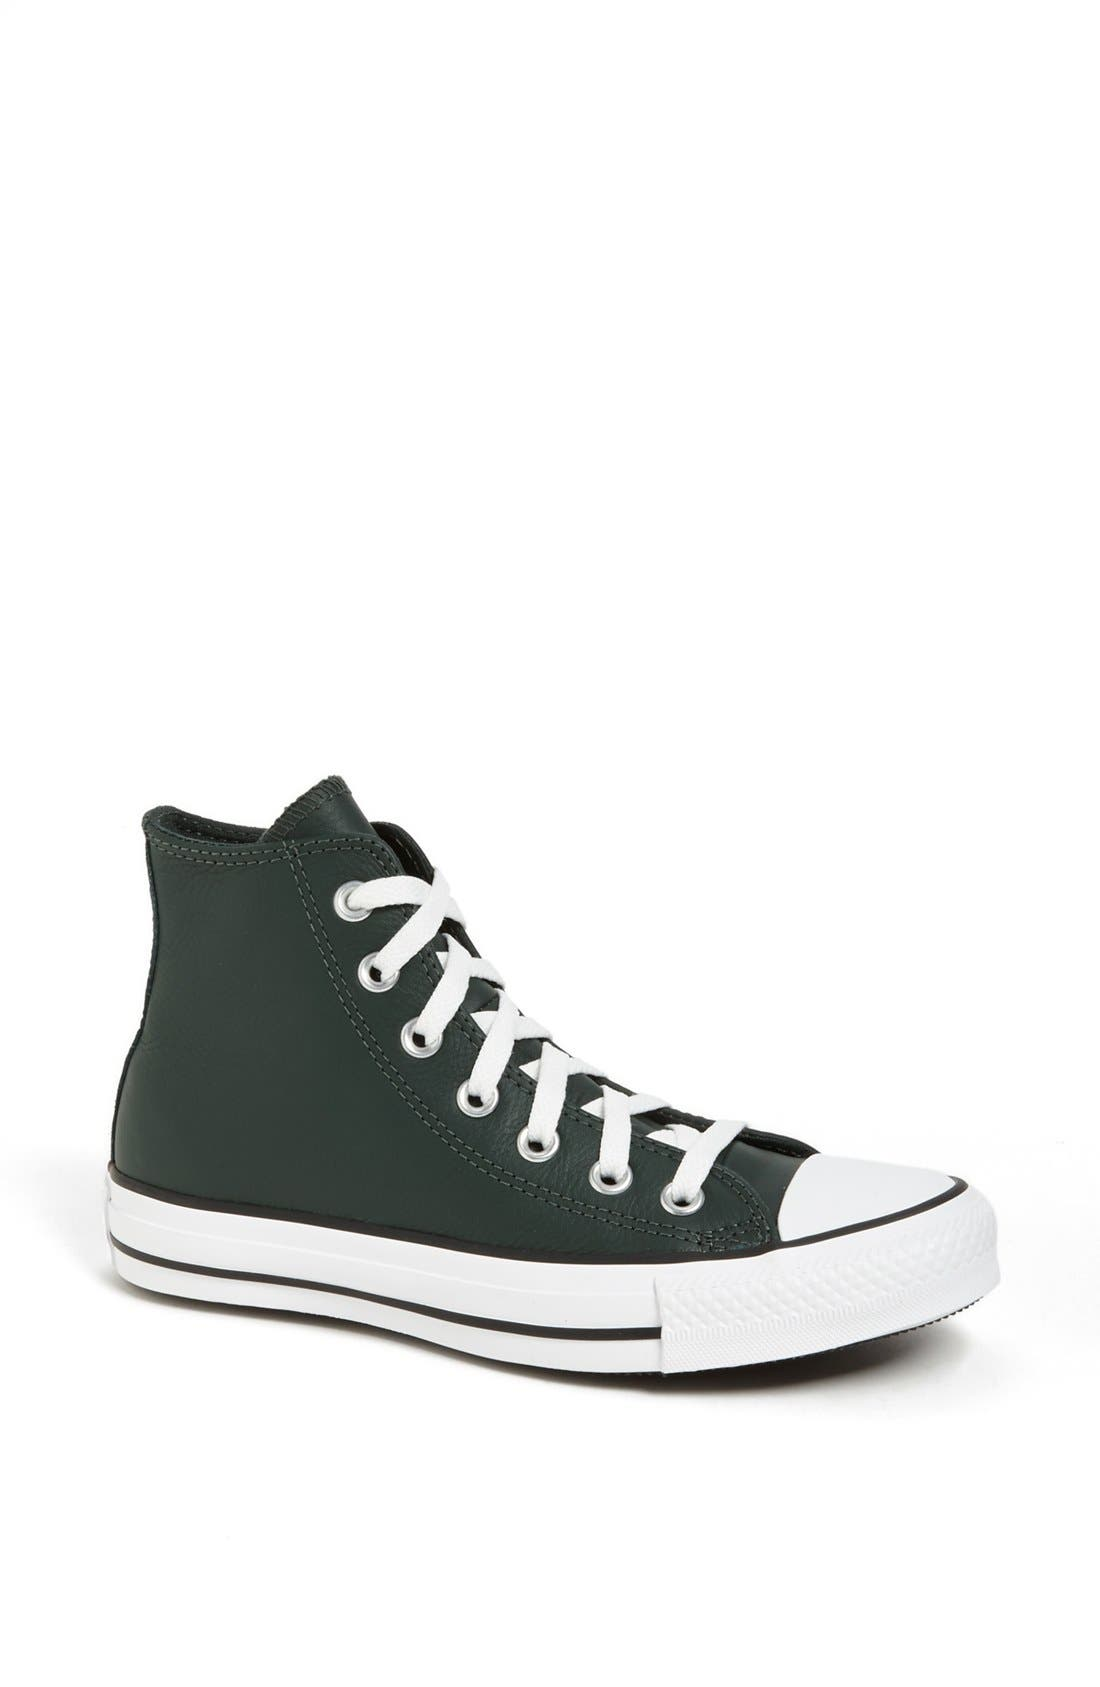 Main Image - Converse Chuck Taylor® All Star® Leather High Top Sneaker (Women)